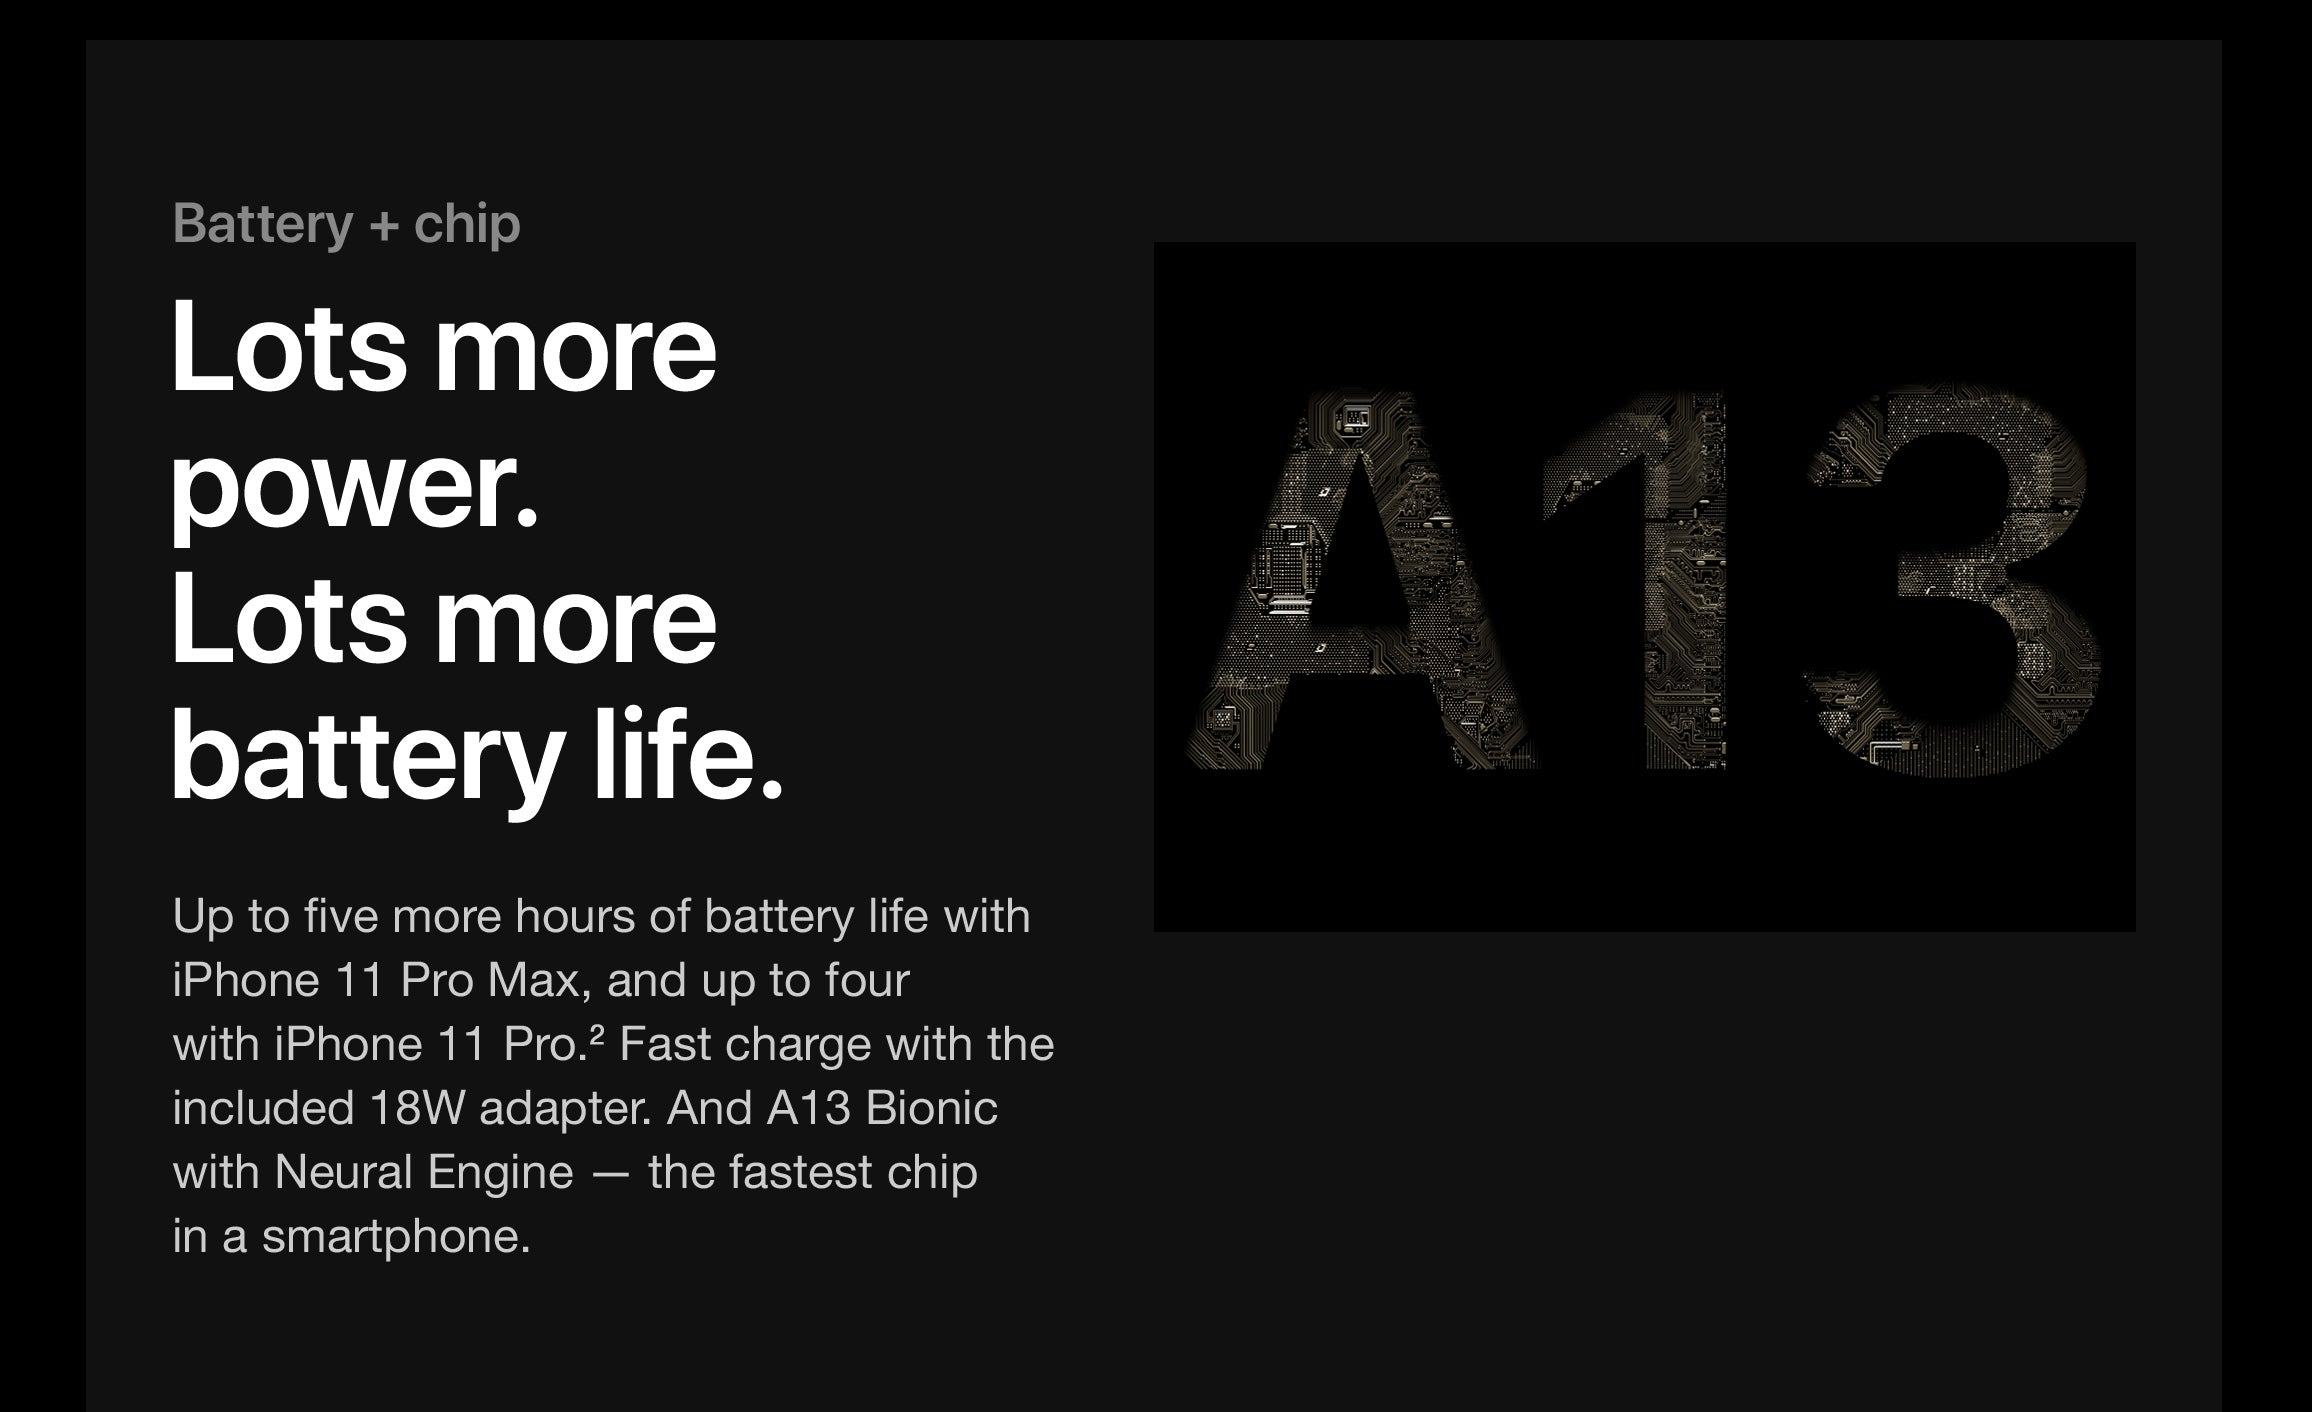 Battery + chip Lots more power. Lots more battery life. Up to five more hours of battery life with iPhone 11 Pro Max, and up to four  with iPhone 11 Pro.2 Fast charge with the included 18W adapter. And A13 Bionic with Neural Engine — the fastest chip  in a smartphone.